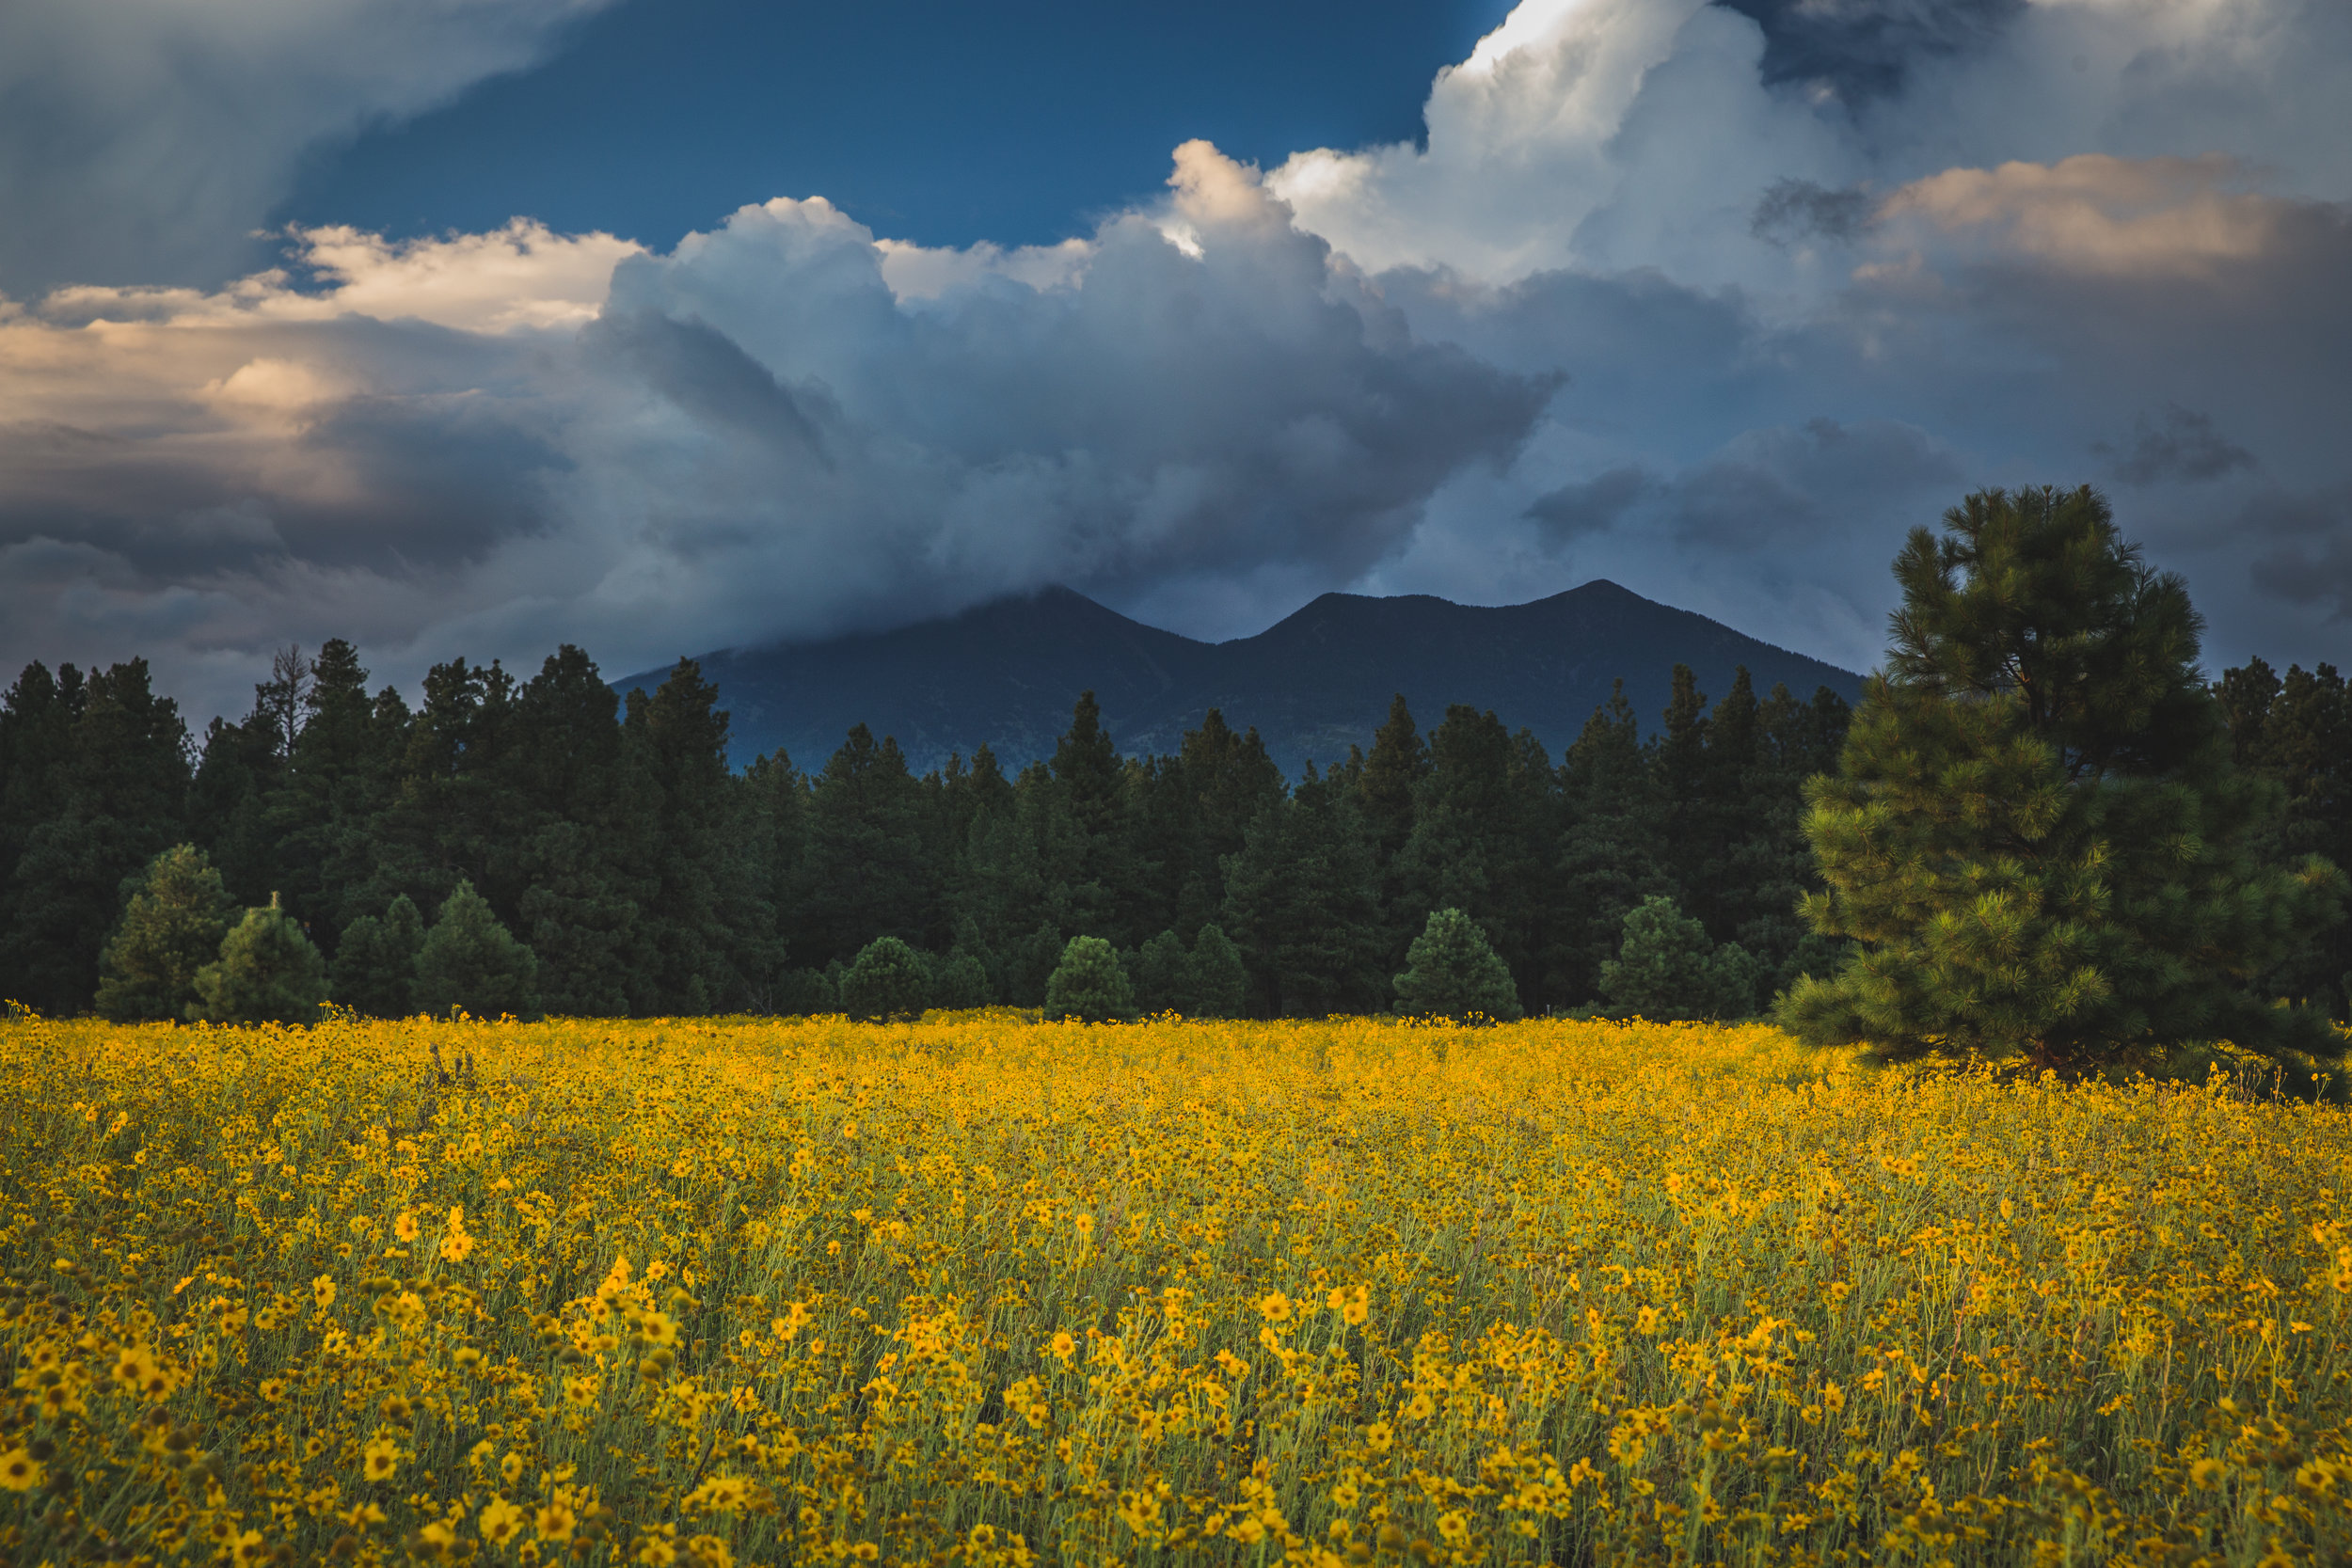 Monsoon clouds gather over the peaks in early September as the prairies of Flagstaff fill with yellow flowers and undergraduate students trying to get that perfect instagram photo!